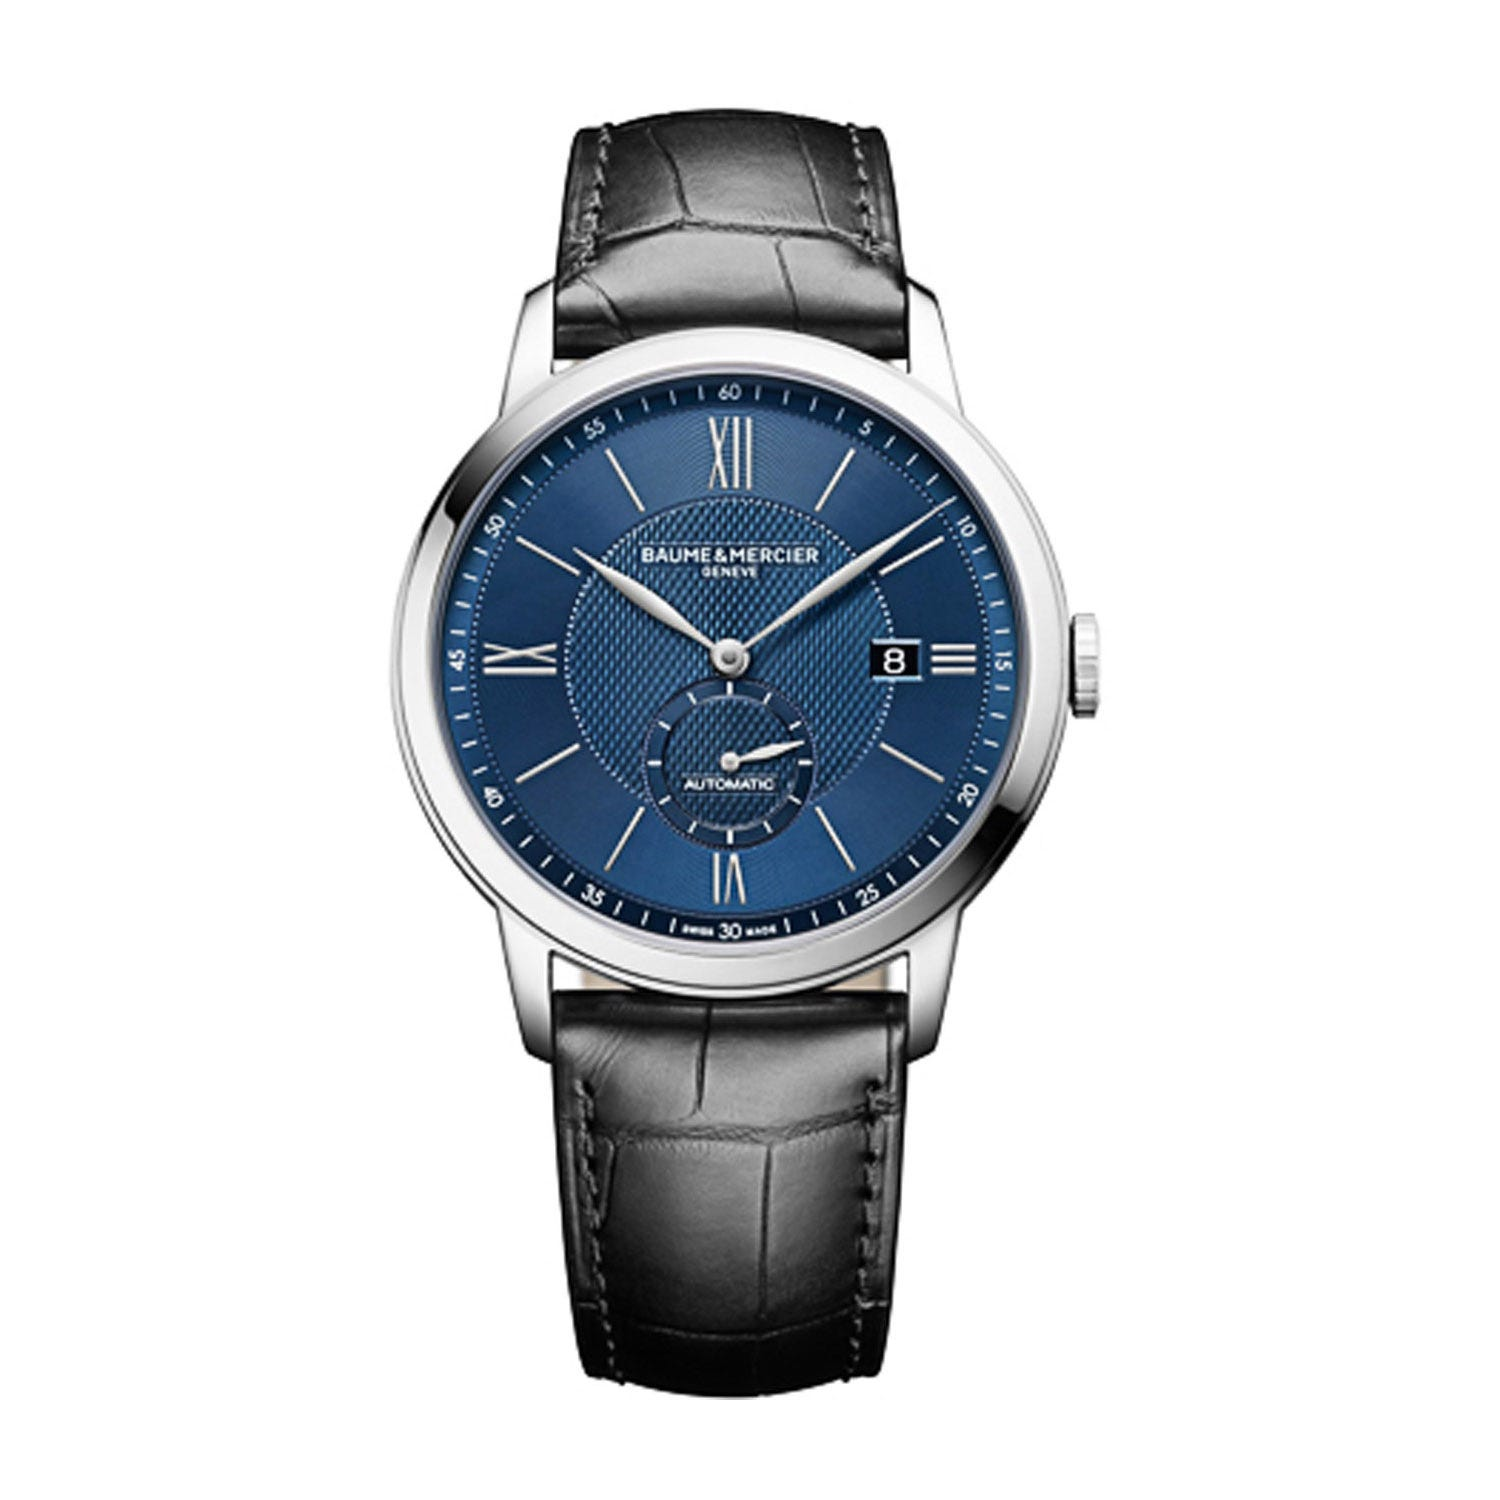 Baume & Mercier Classima Black and Blue 42mm Men's Automatic Watch